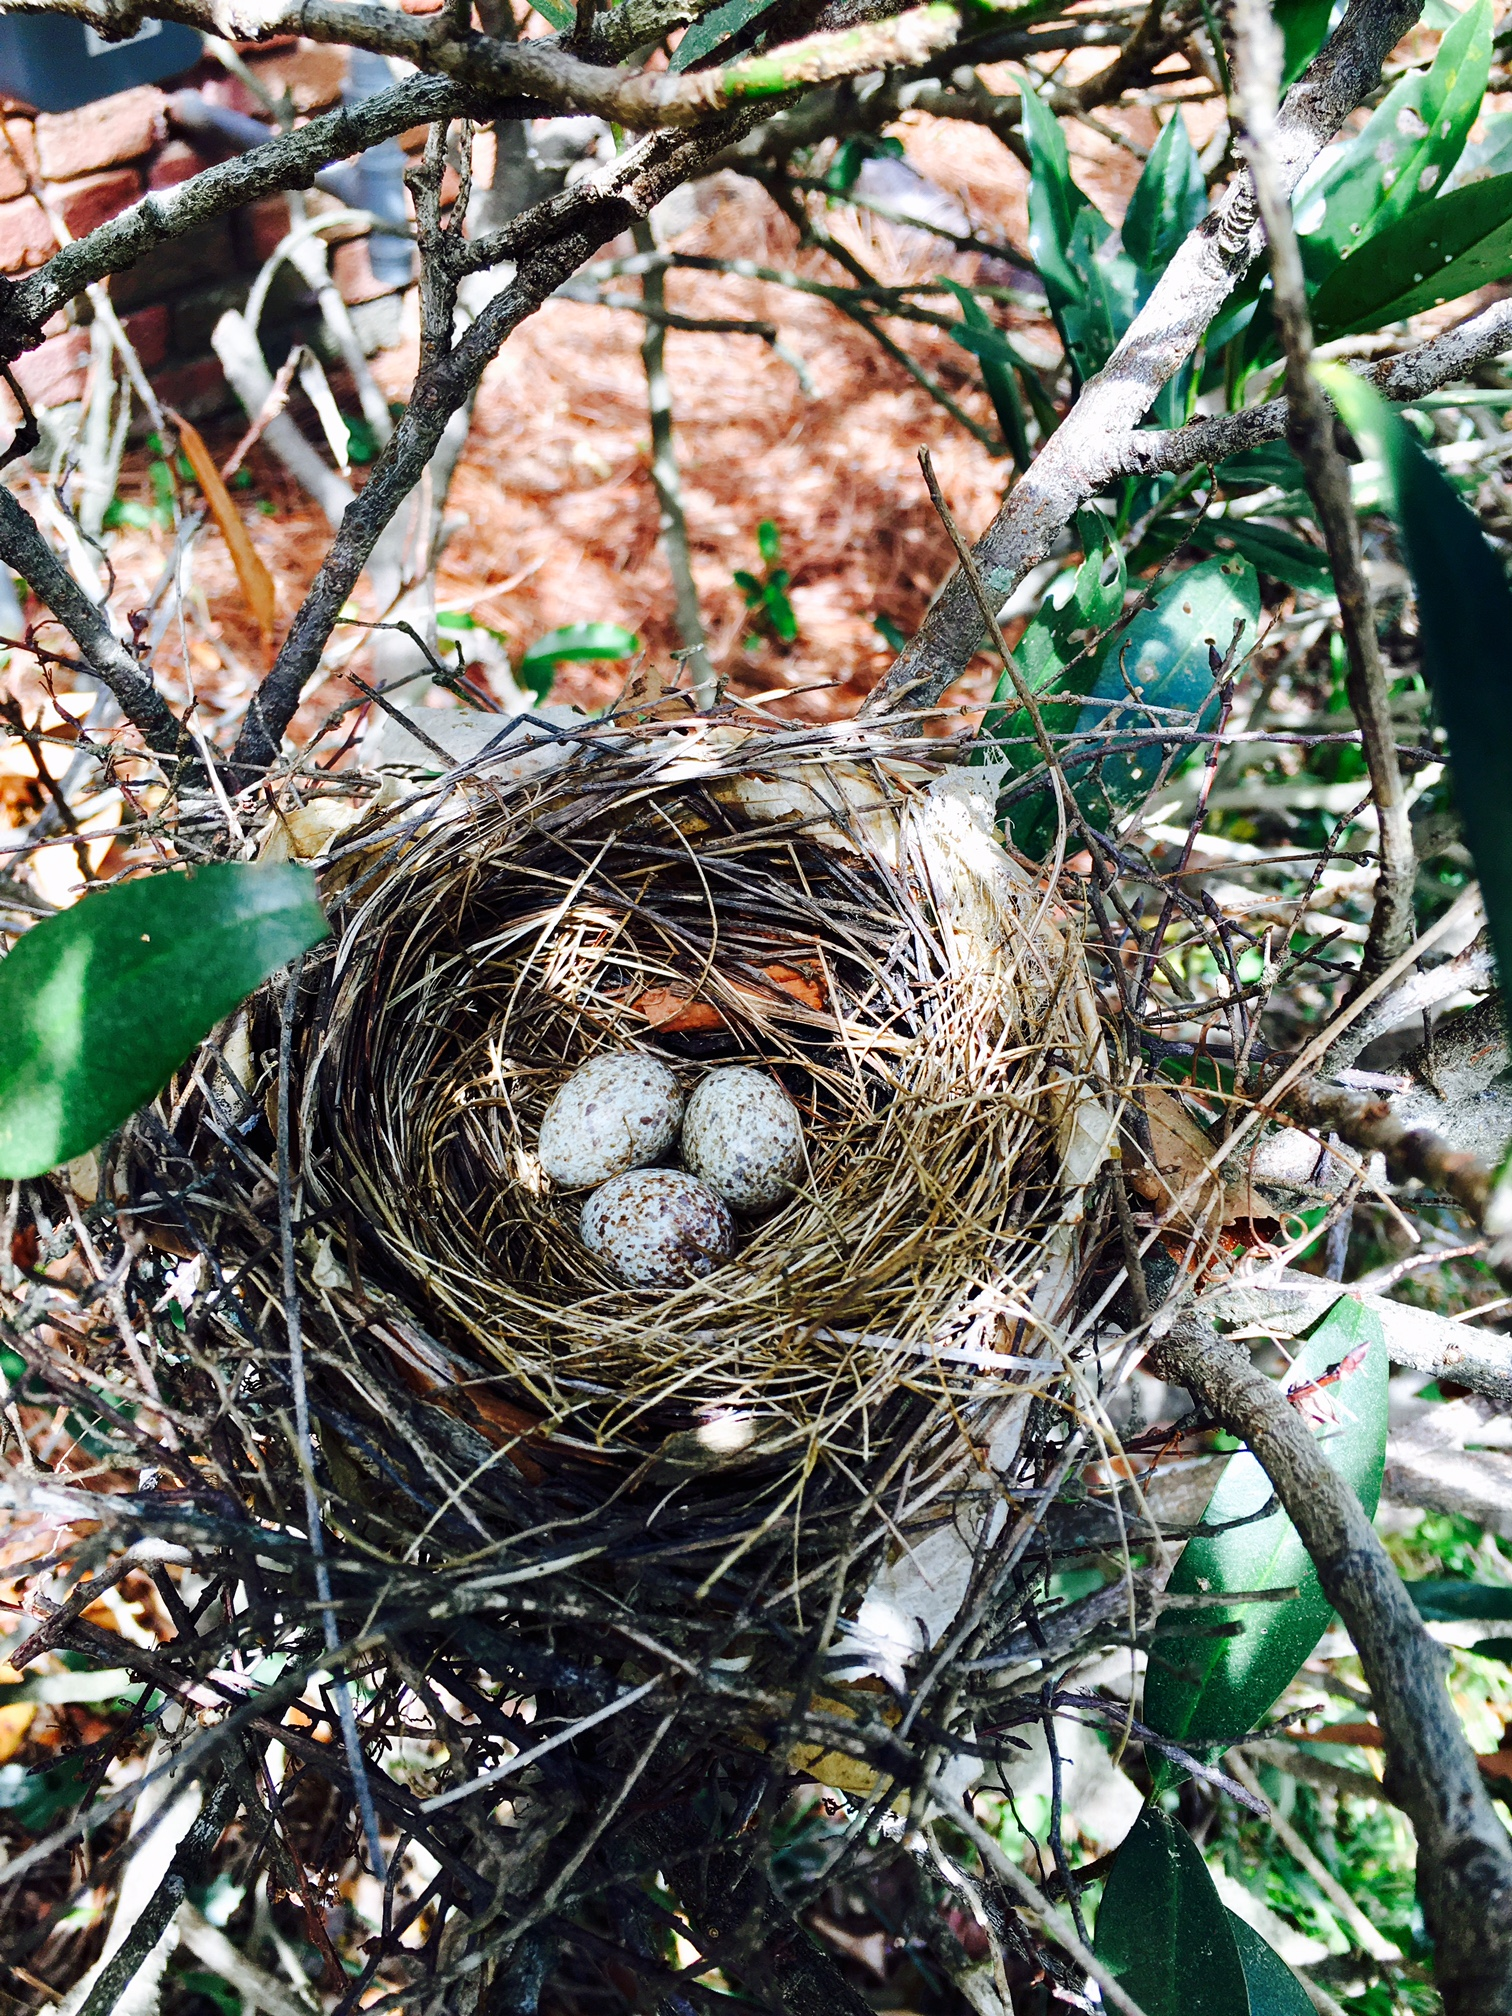 Bird nest Lisa found in her yard this year ... the real thing!